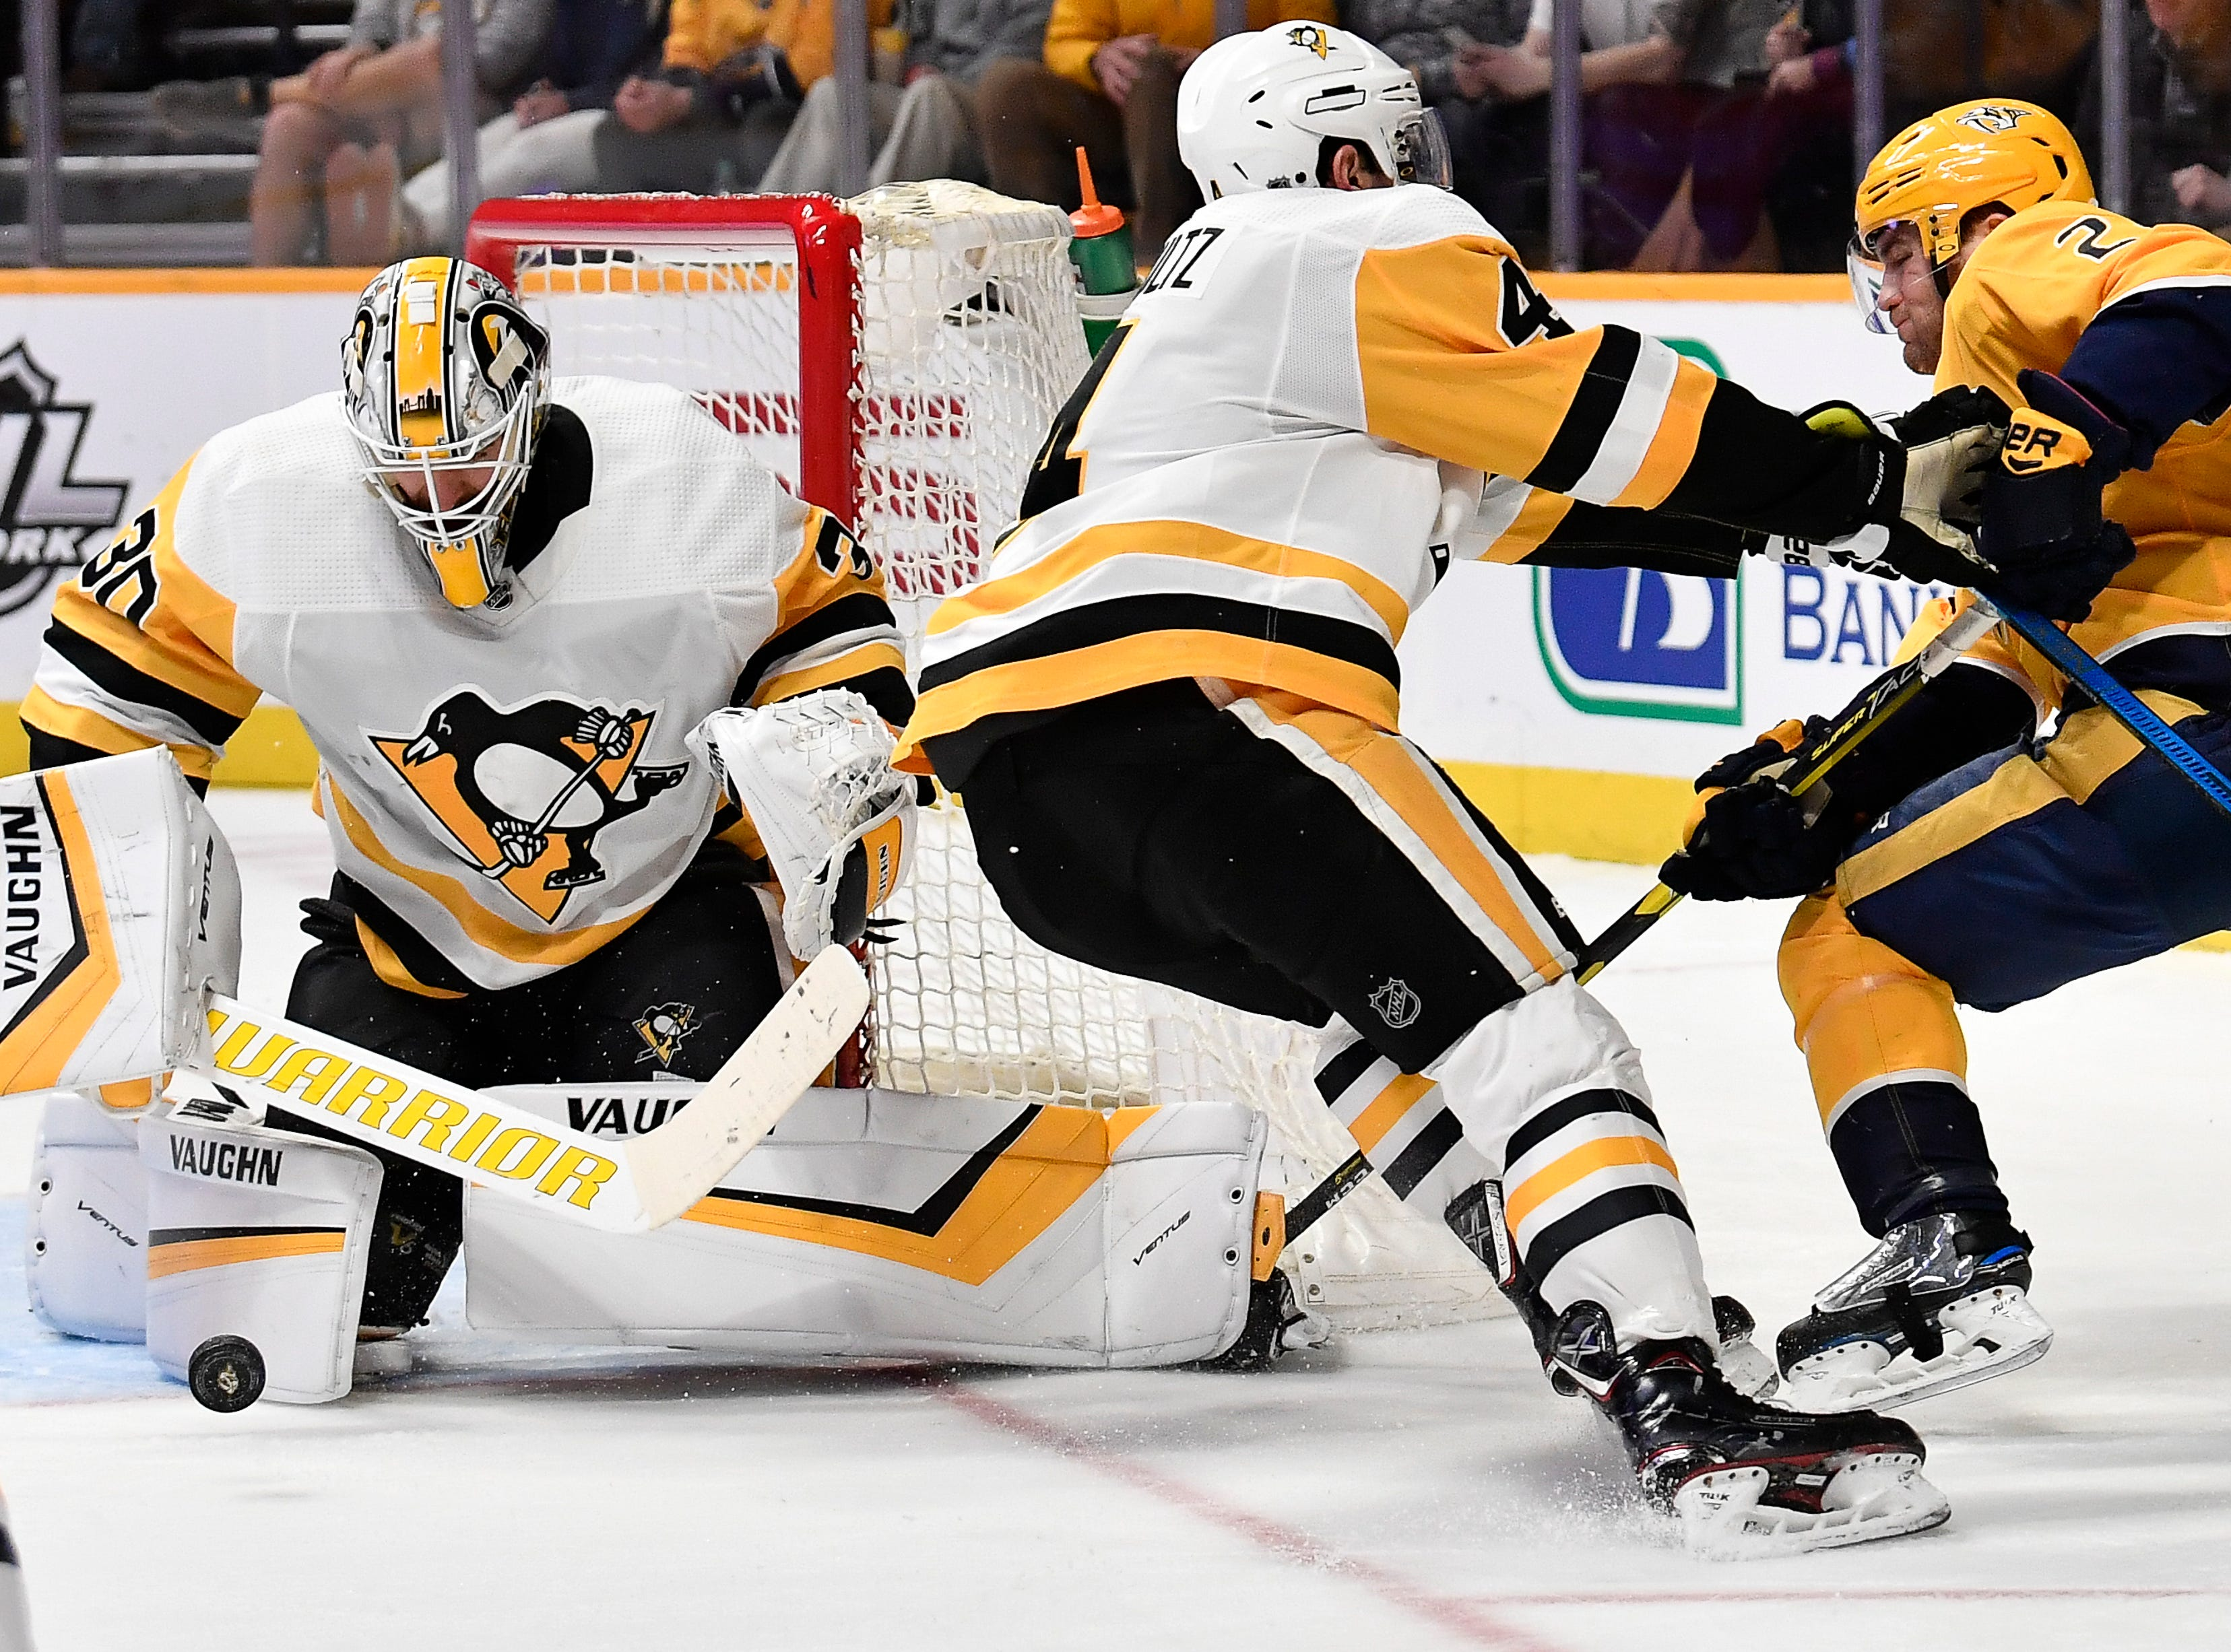 Penguins goaltender Matt Murray (30) blocks a Predators shot on goal as Penguins defenseman Justin Schultz (4) pushes Predators center Rocco Grimaldi (23) away during the third period at Bridgestone Arena Thursday, March 21, 2019 in Nashville, Tenn.